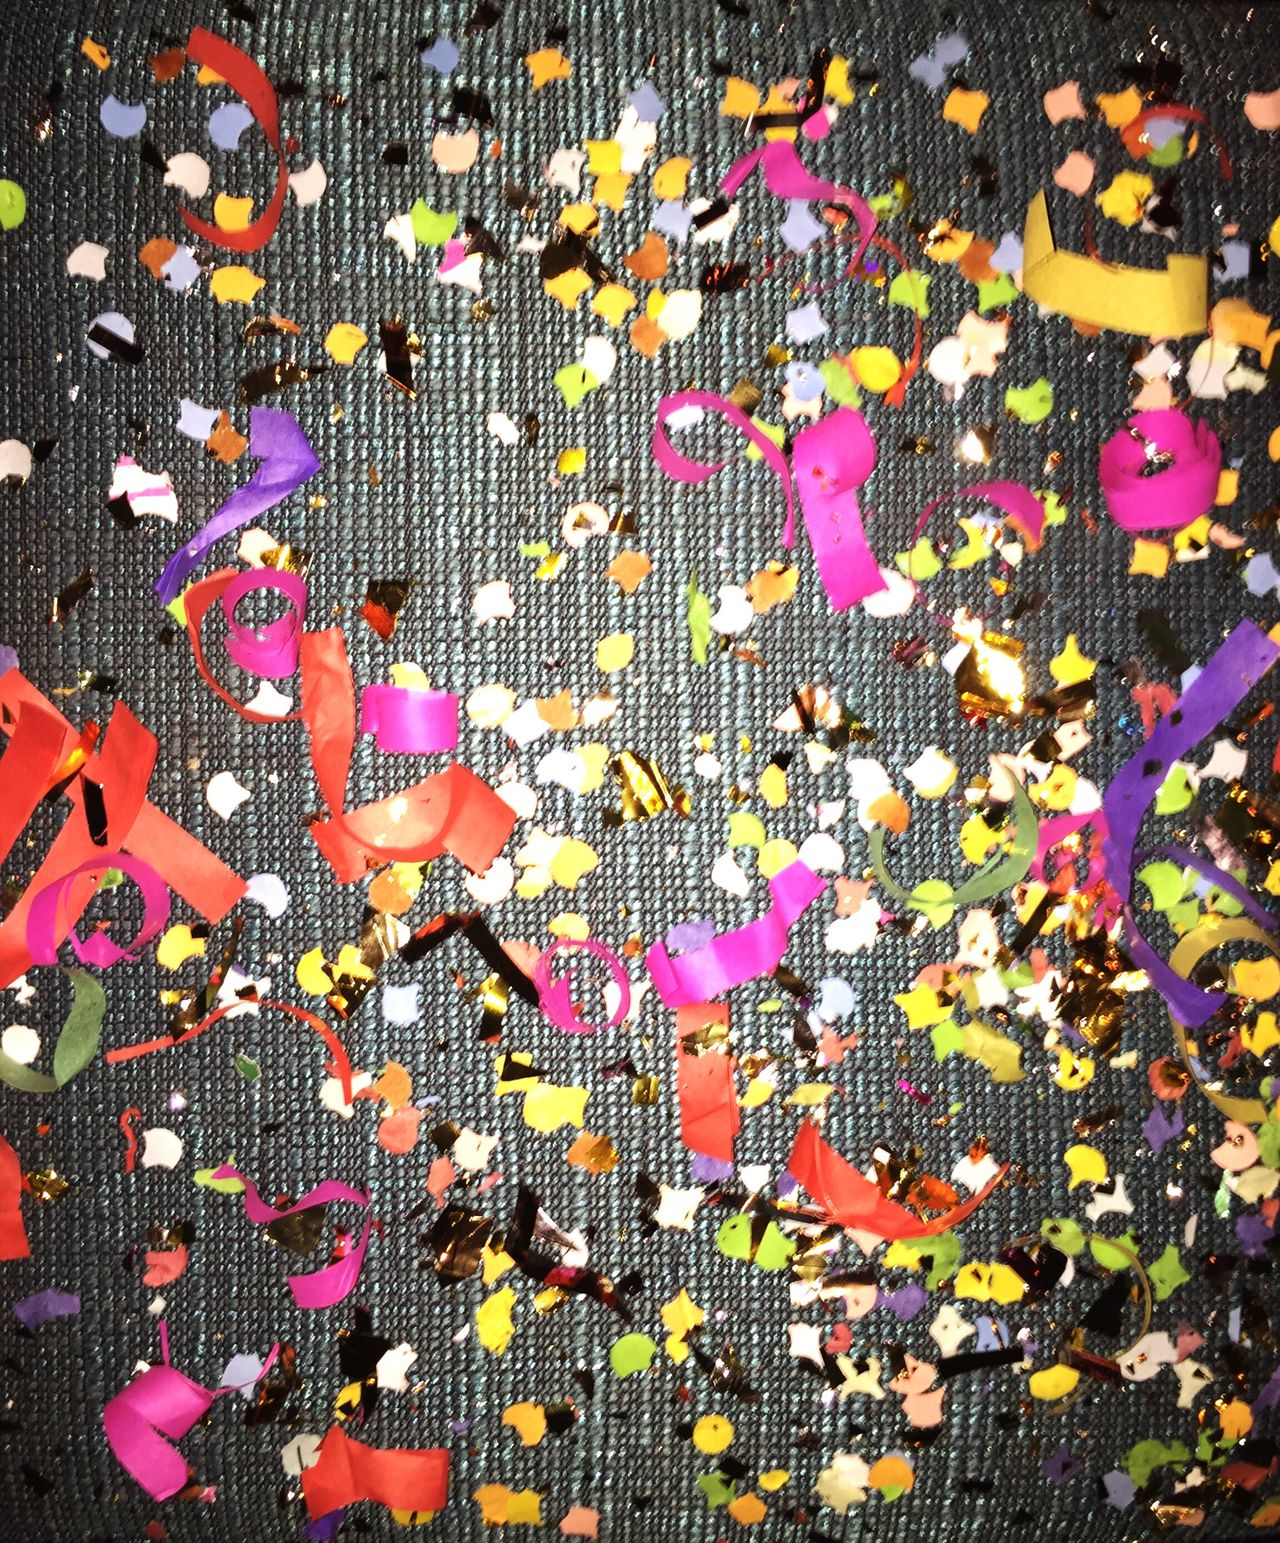 Multi Colored Backgrounds Confetti Celebration No People Glitter Glitzer Bunt Party Feiern Sylvester